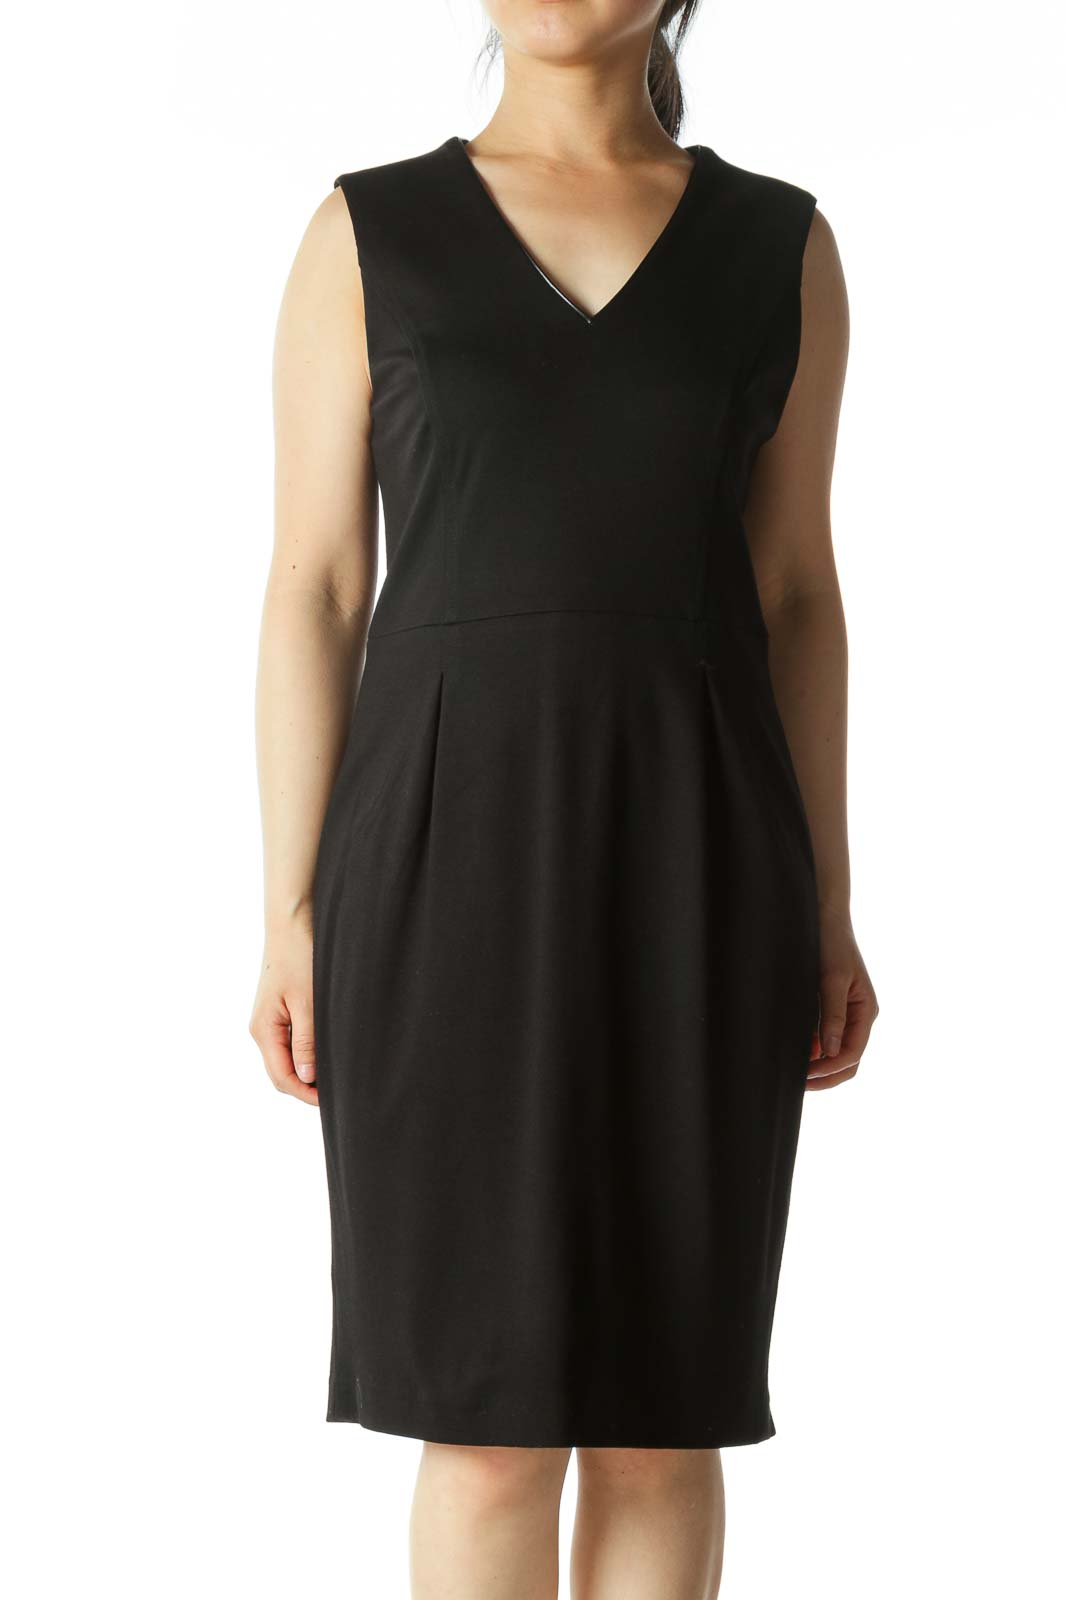 Black V-neck Slim Dress